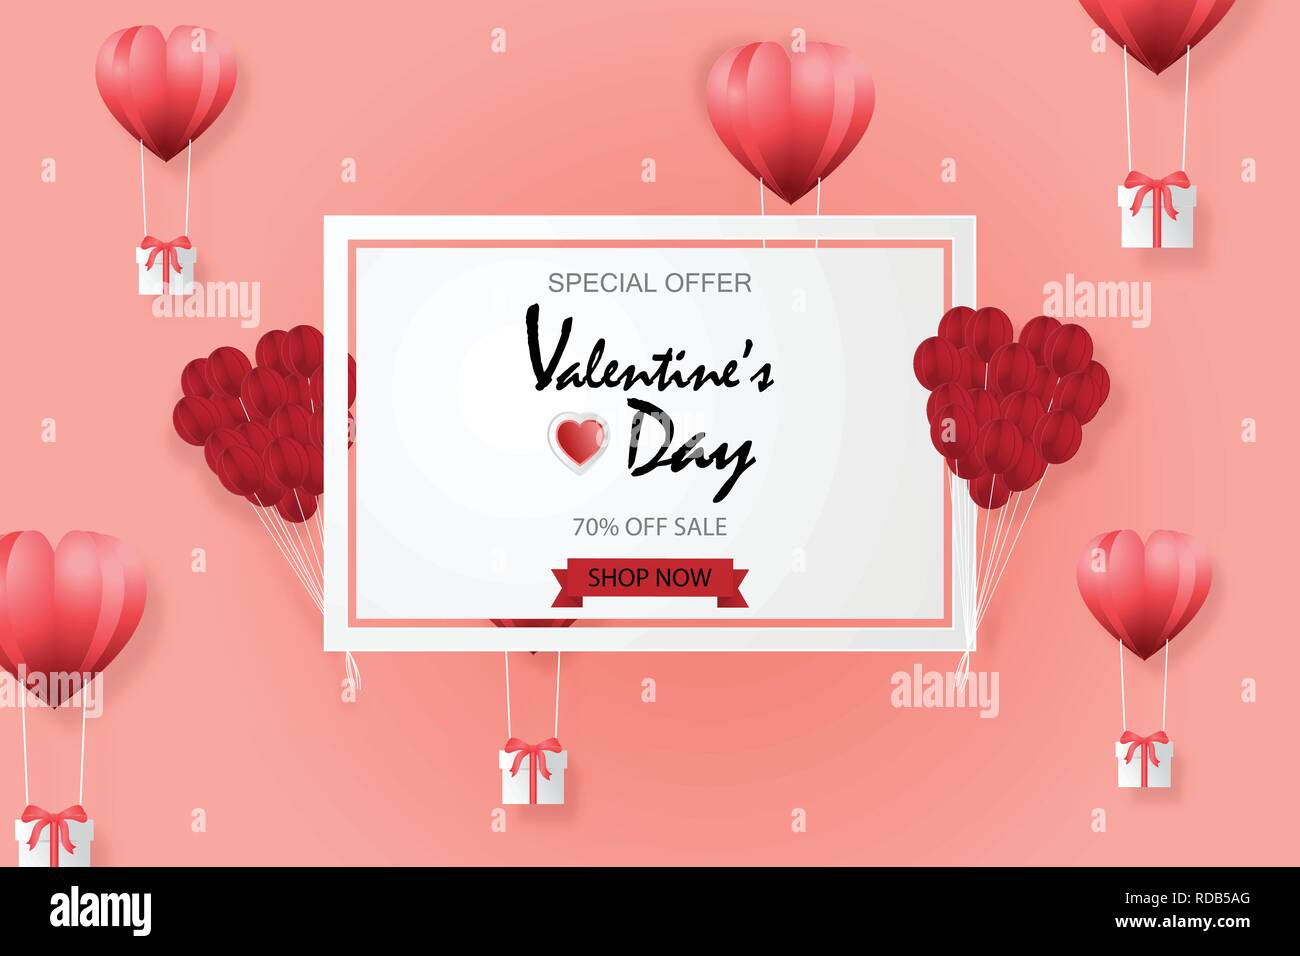 f56bdfab35 Creative valentines day sale background with hot air balloon paper cut  style background. Vector illustration digital paper craft. Color trend.  Flyers.